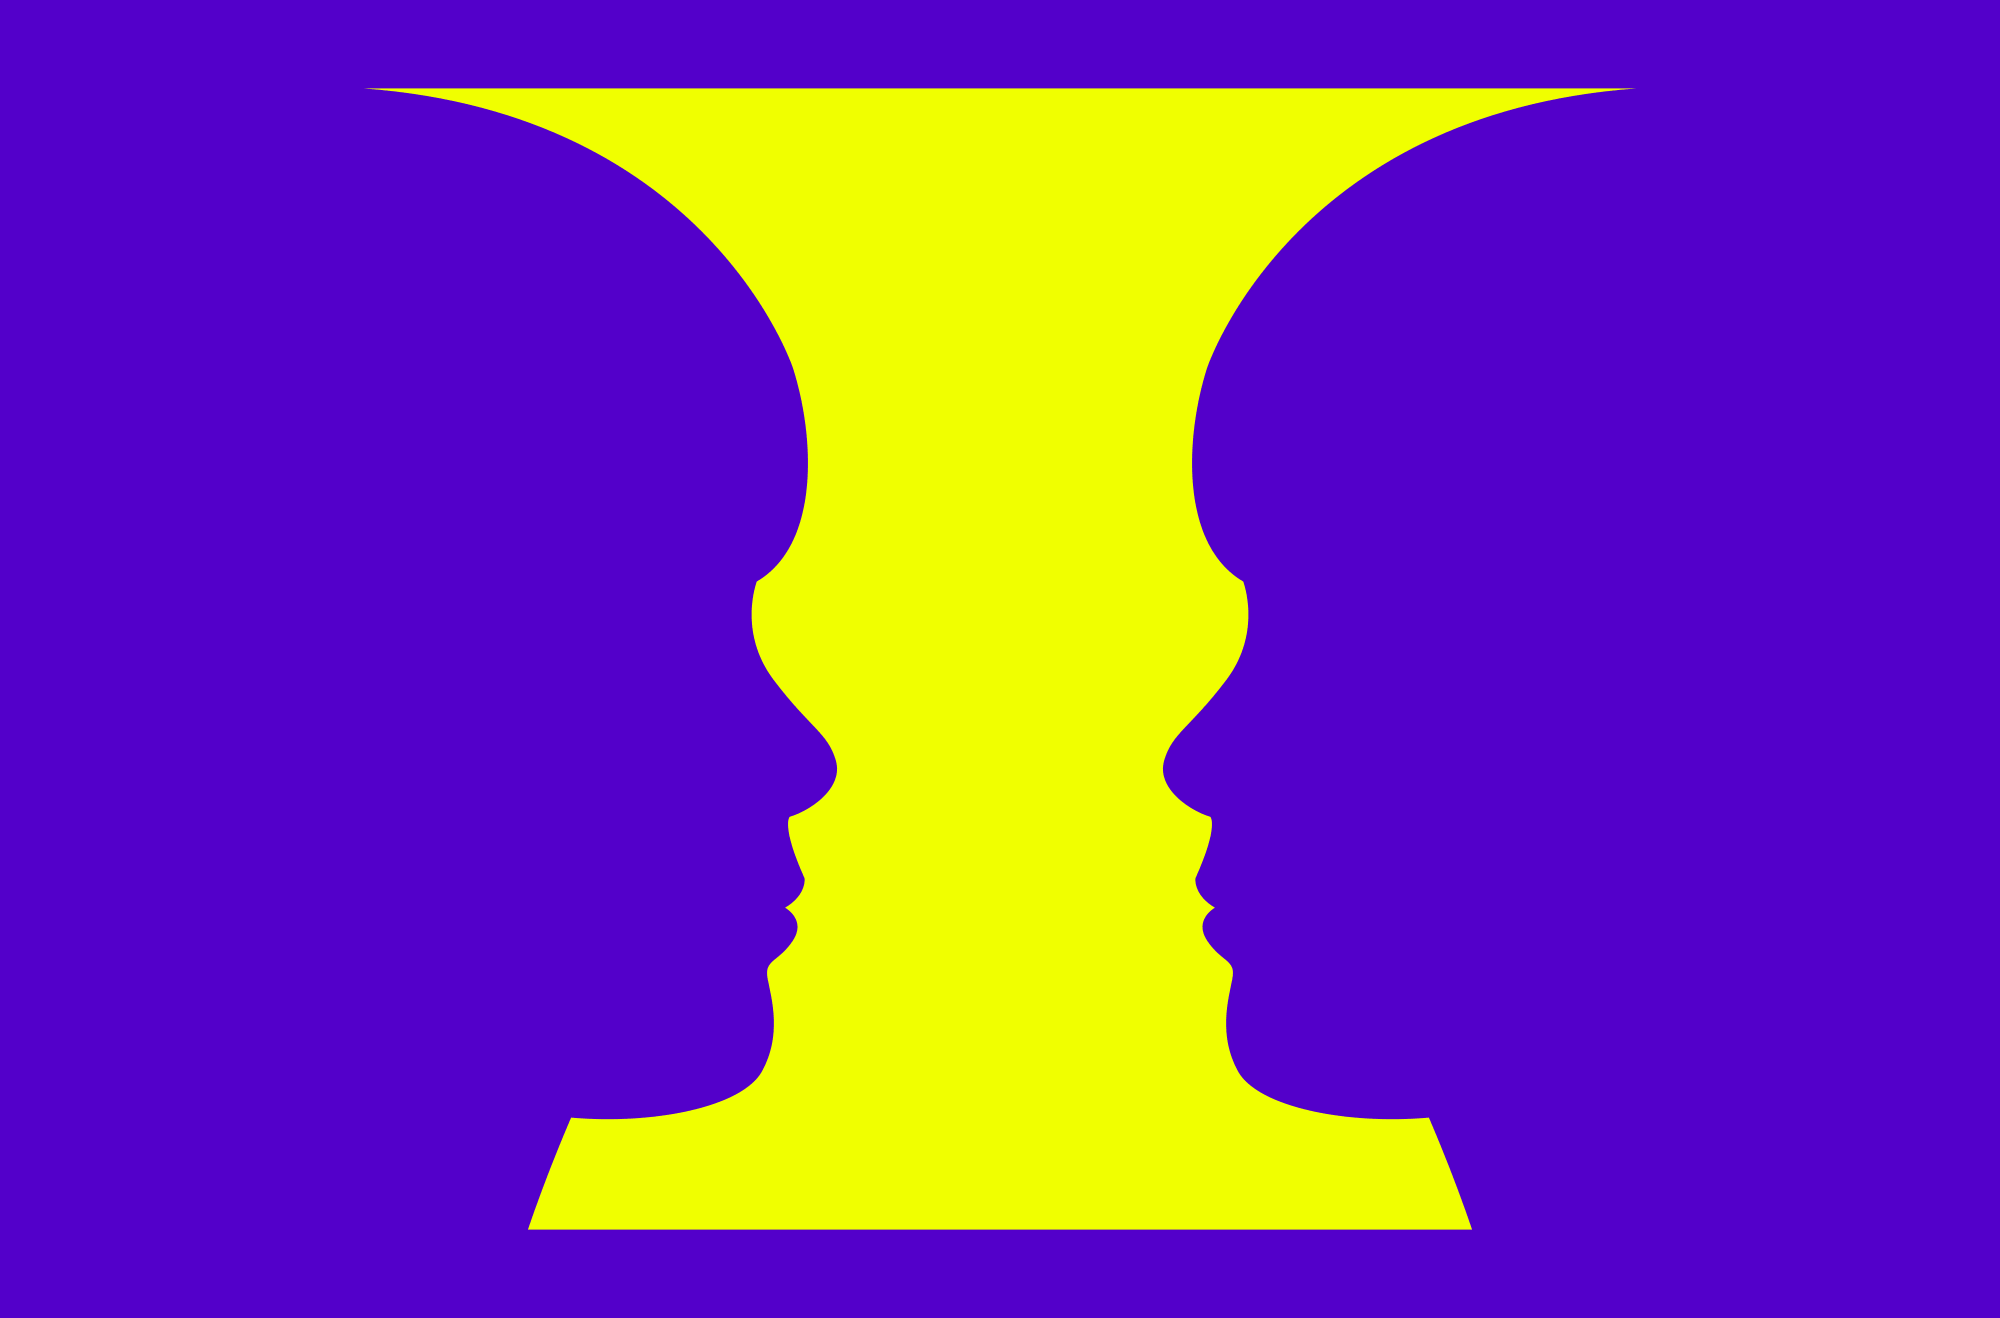 Yellow vase, with symmetrical curves on either side resembling the profile of a boy.